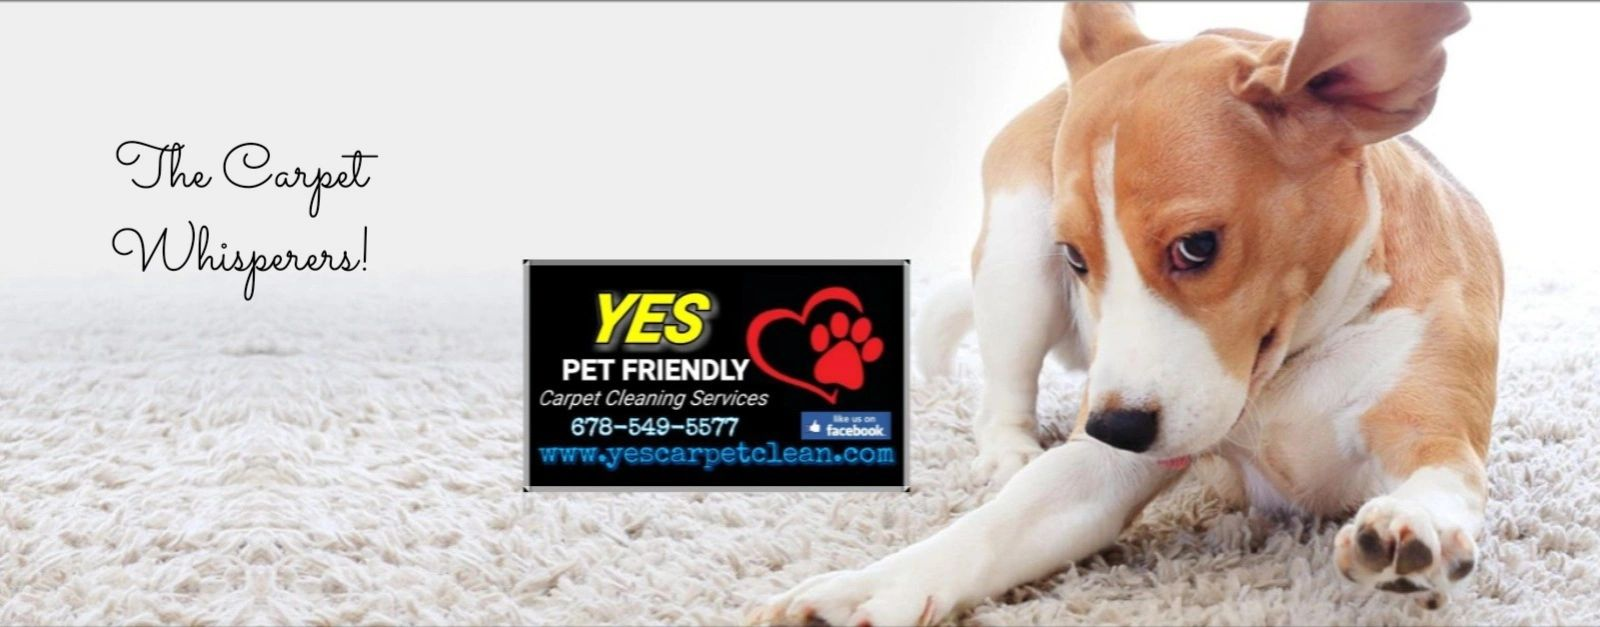 Yes Pet Friendly Carpet Cleaning In Sugar Hill Georgia